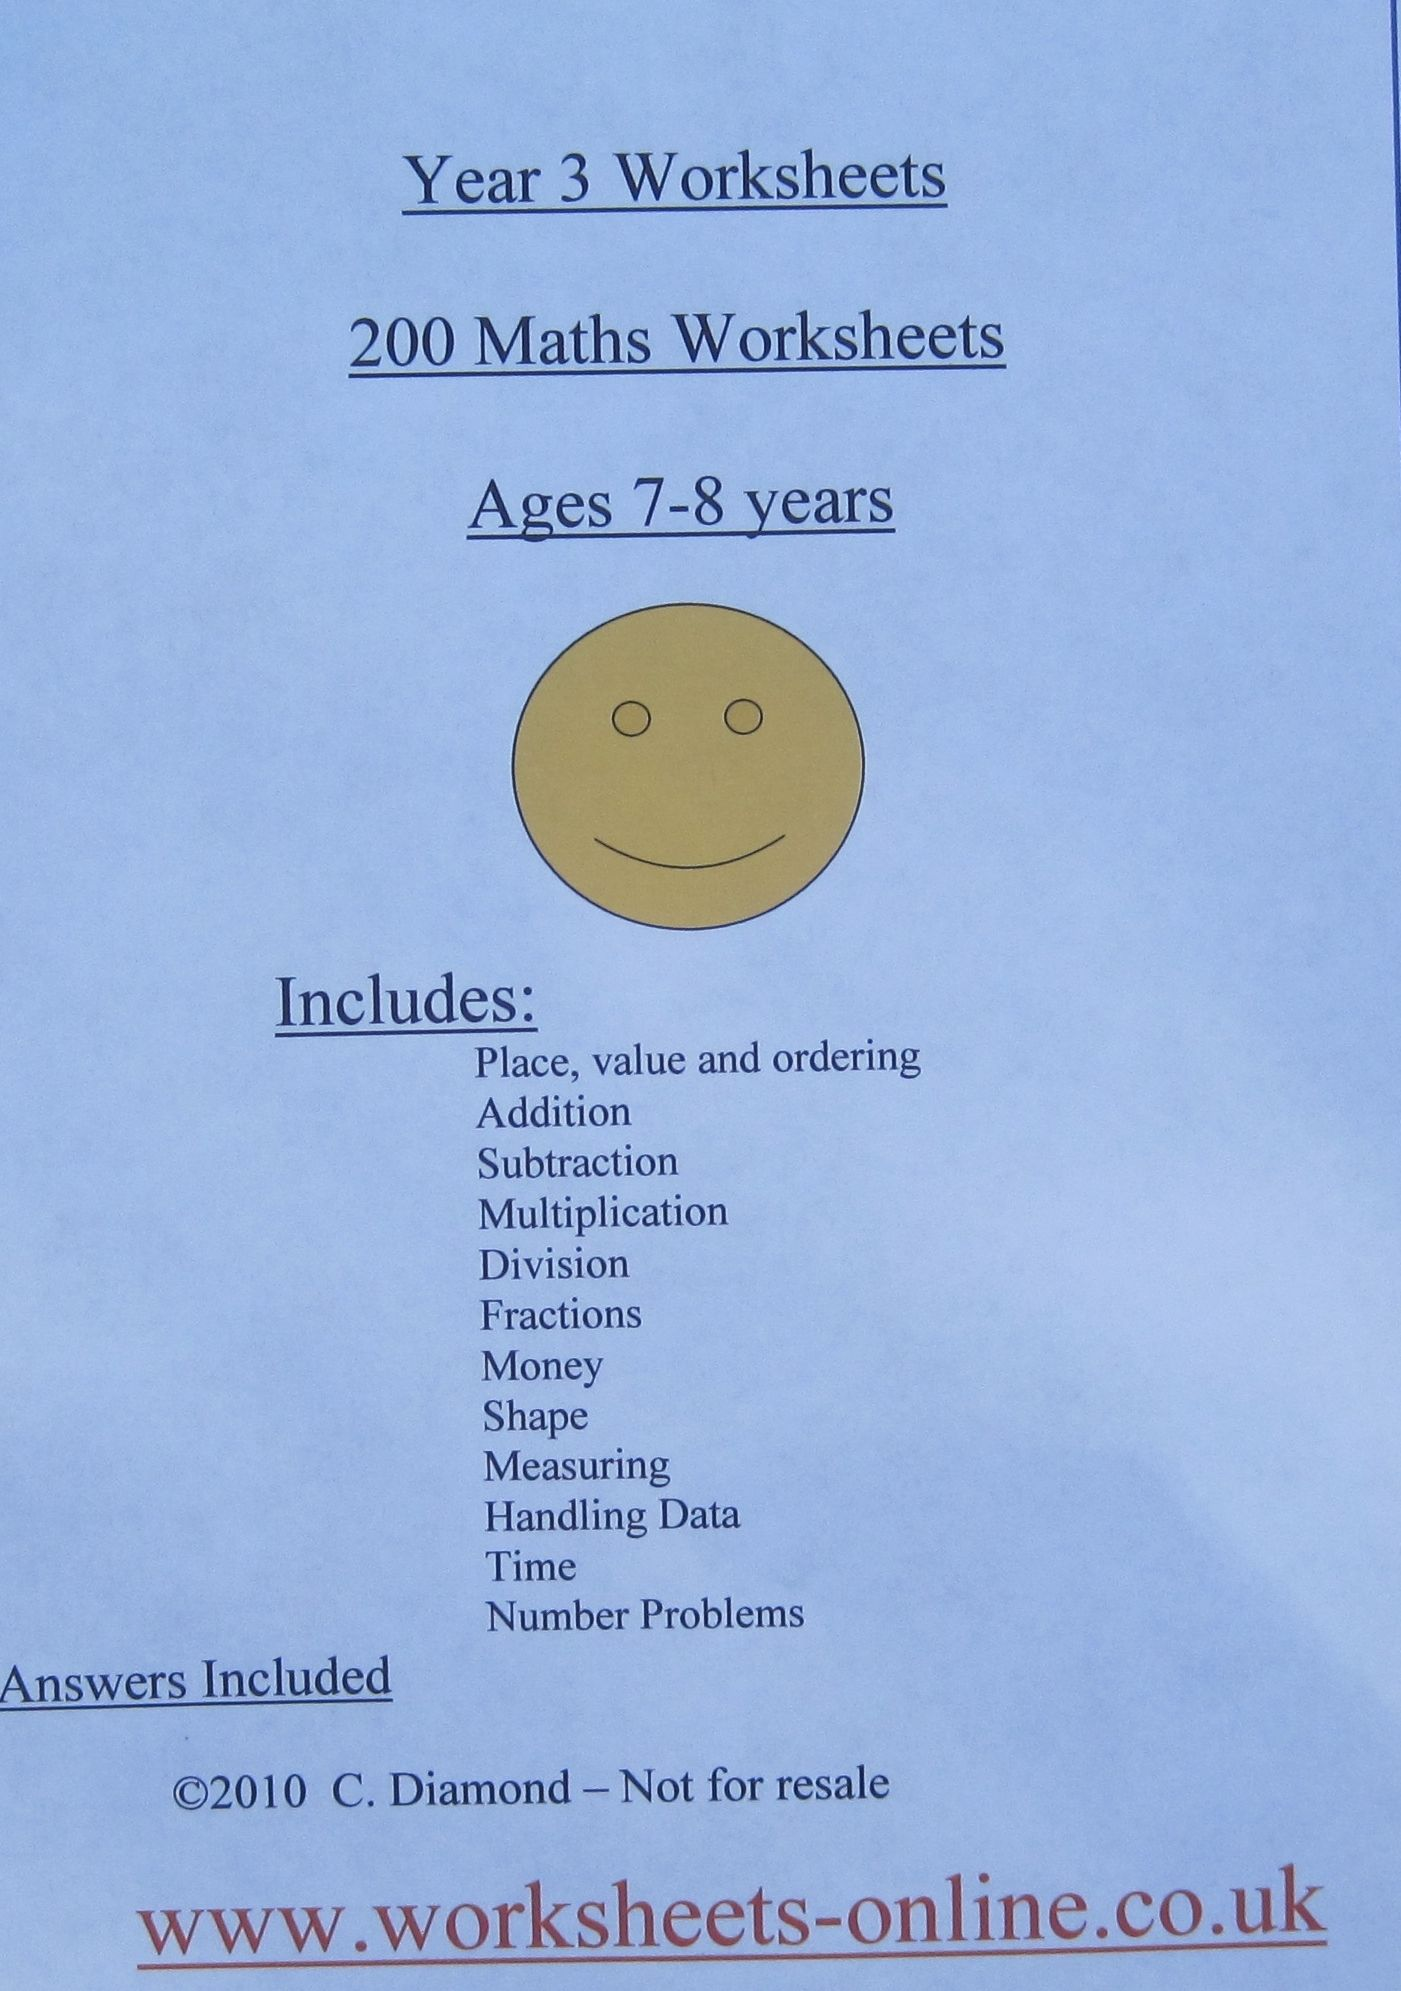 200 Year 3 Maths Worksheets For Children Aged 7 8 Years Old